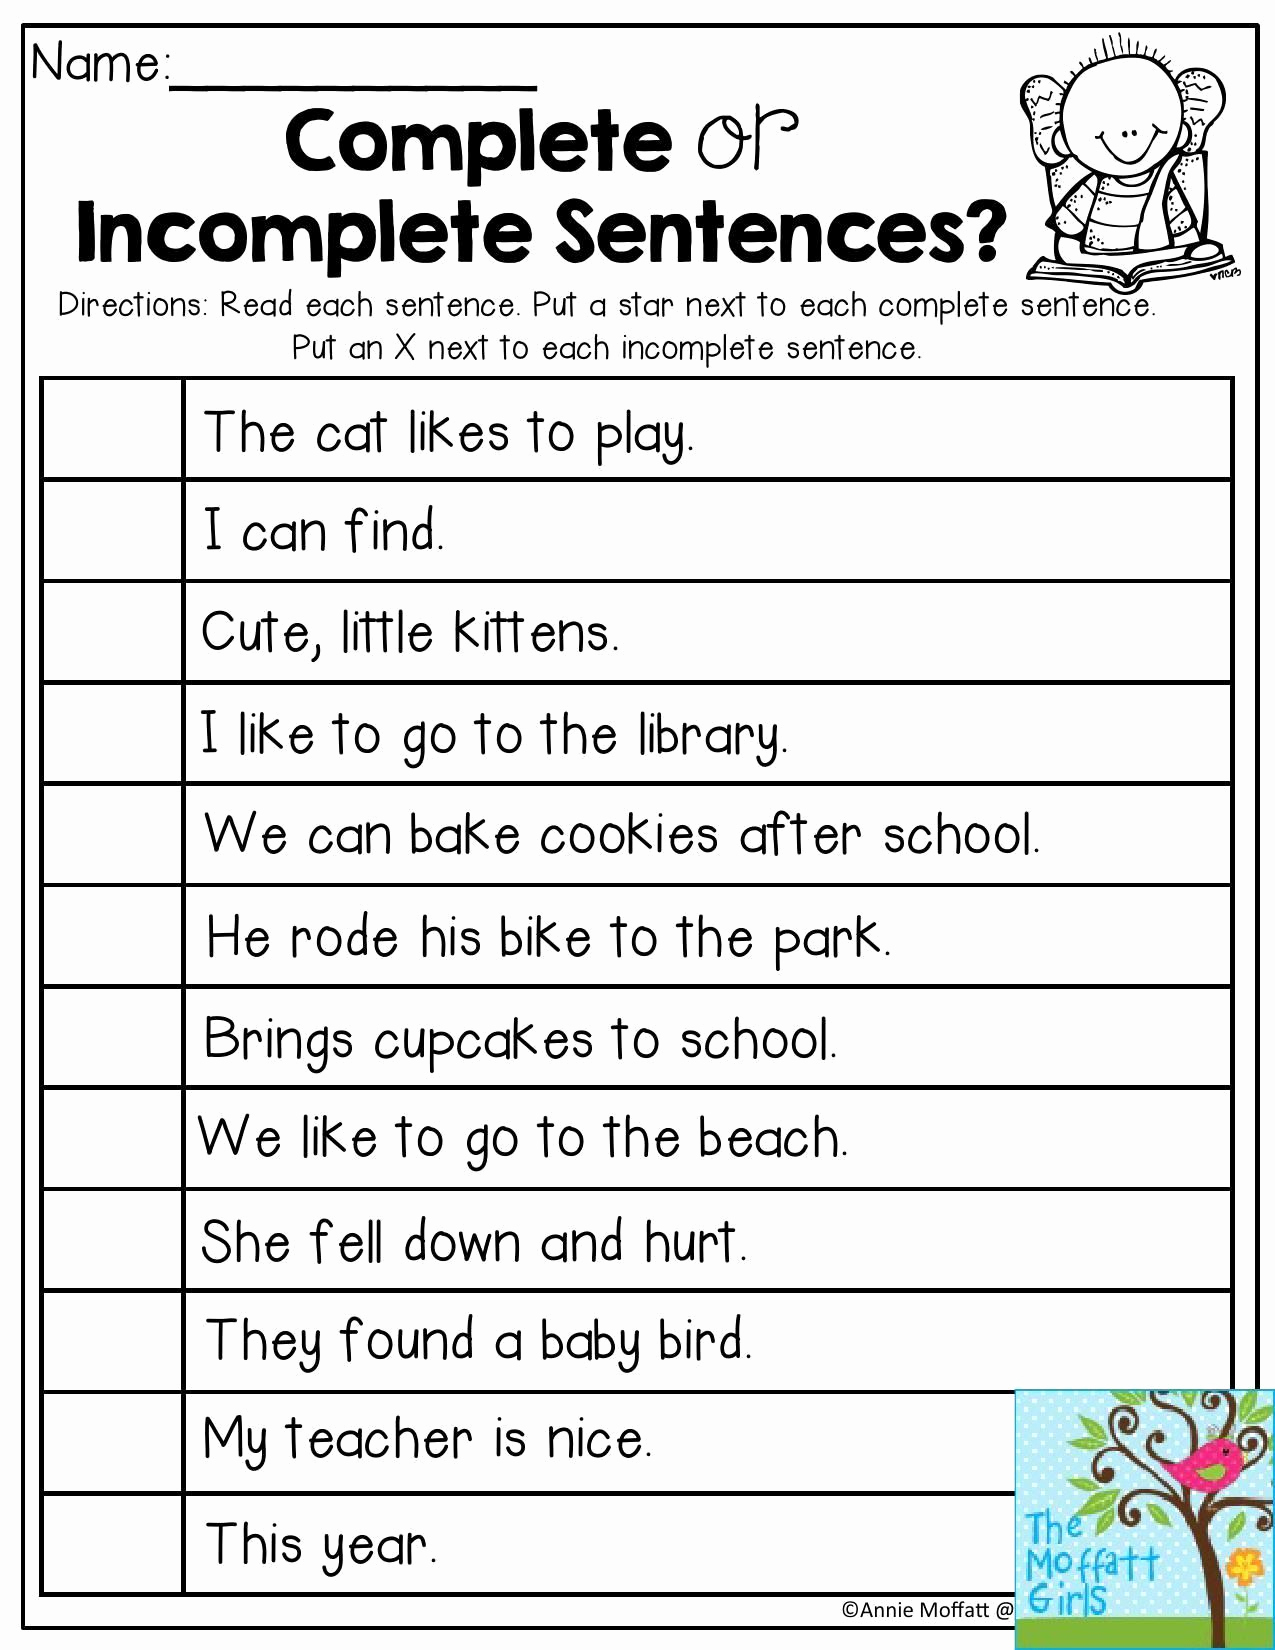 Sentence Worksheets for First Grade Luxury Unscramble Sentences Worksheets 1st Grade